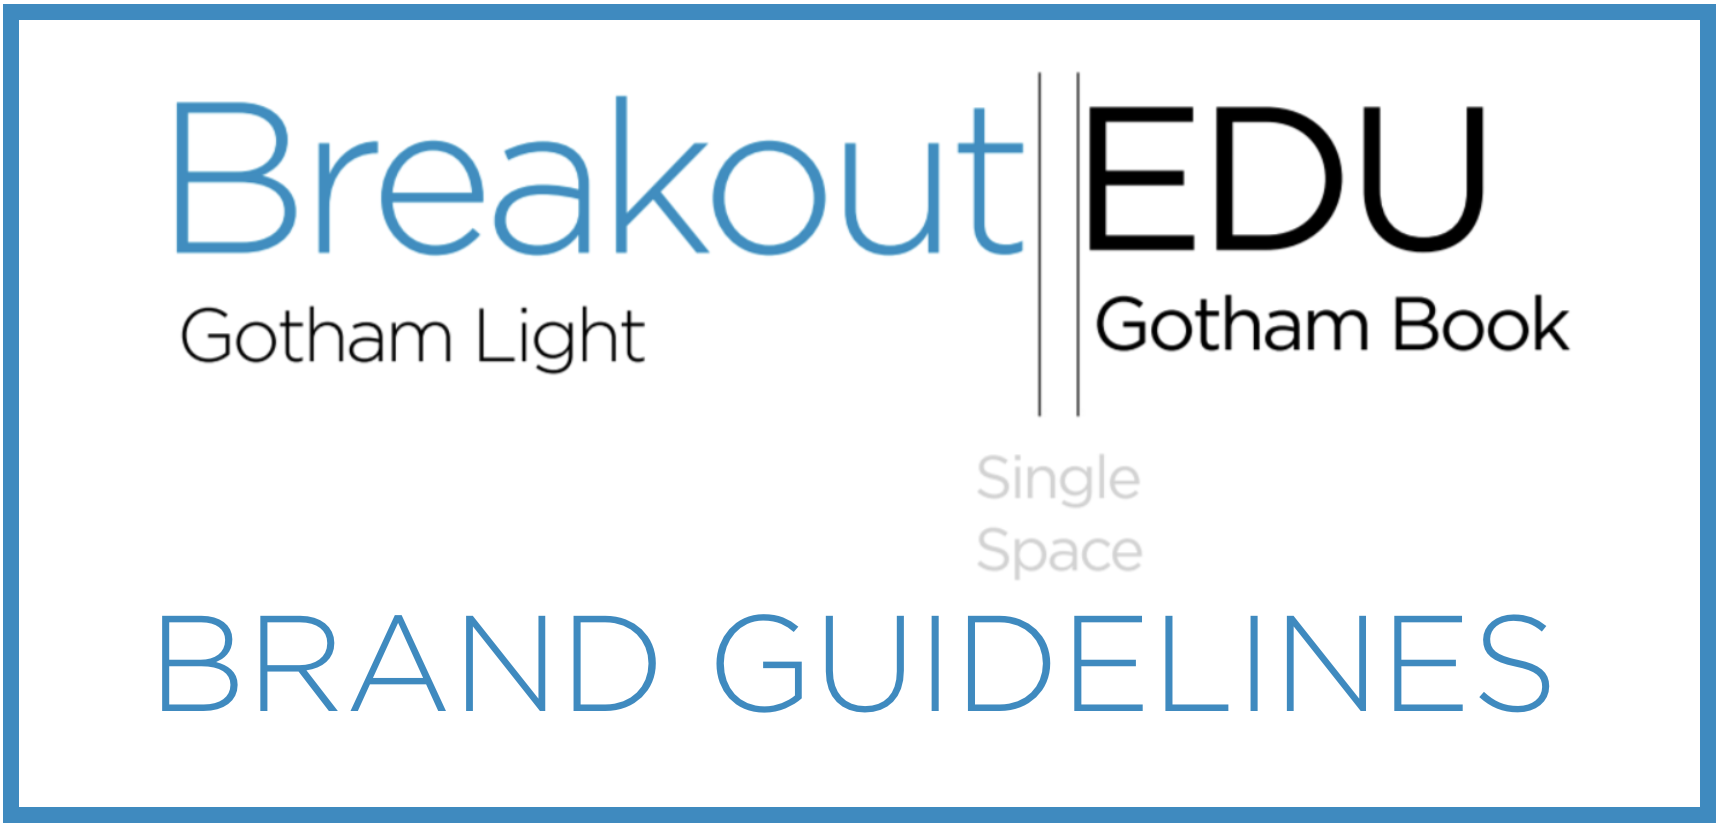 These are the official guidelines on how you can and can't use the Breakout EDU brand and logo.